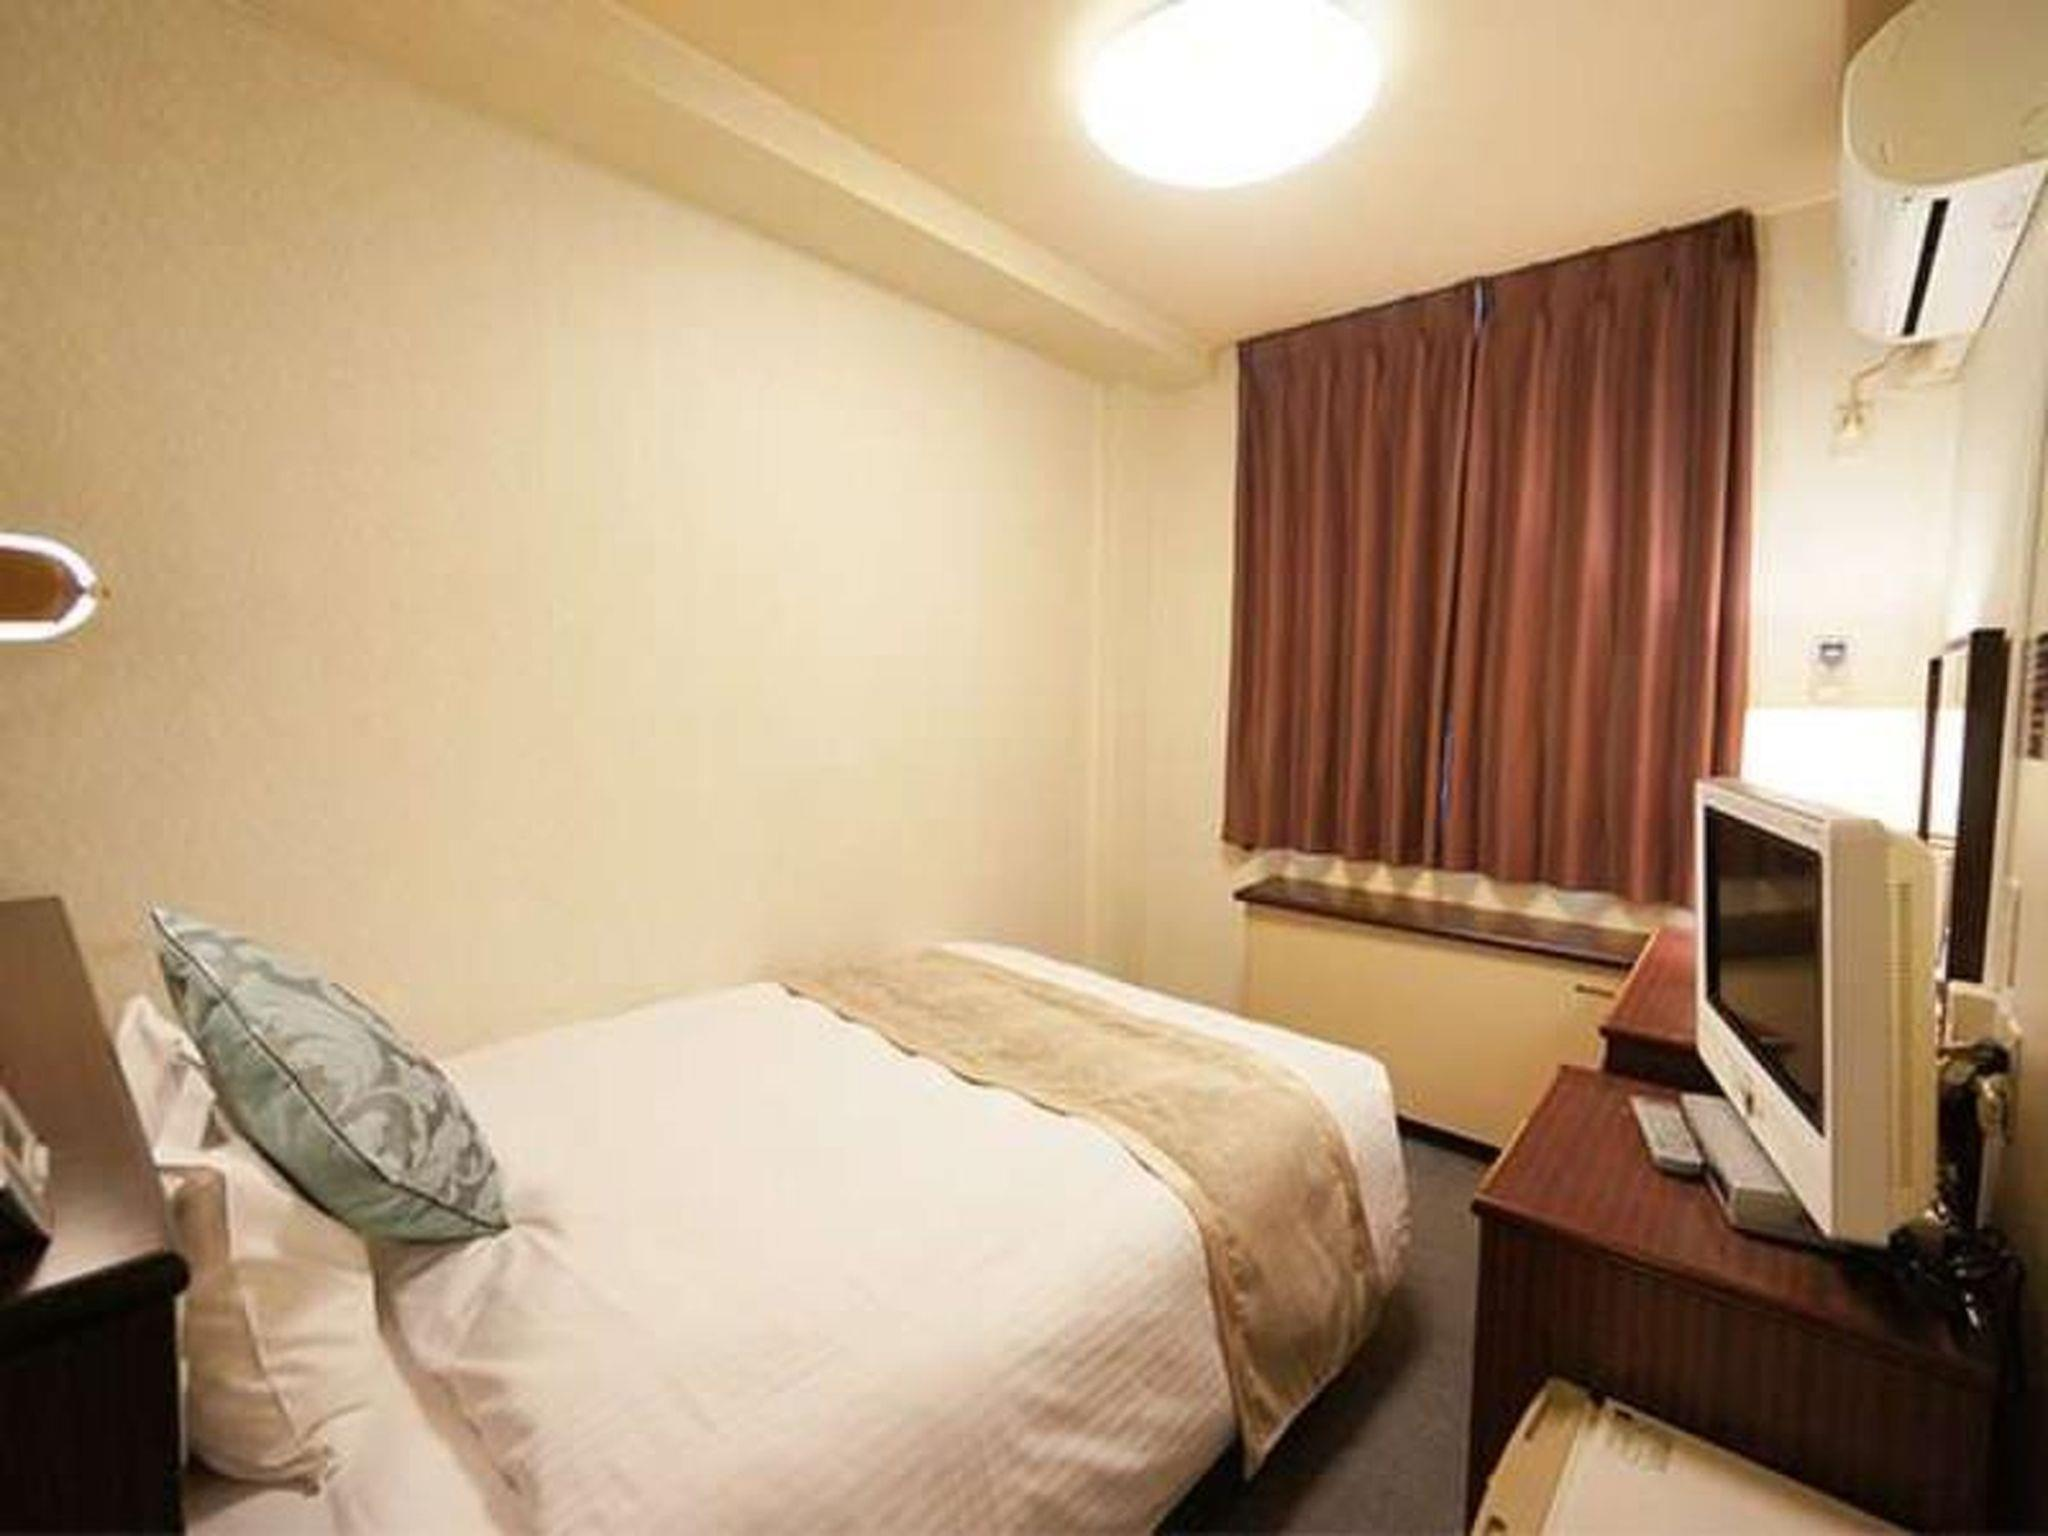 Kamar Economy Single – Boleh Merokok (Economy Single Room - Smoking)